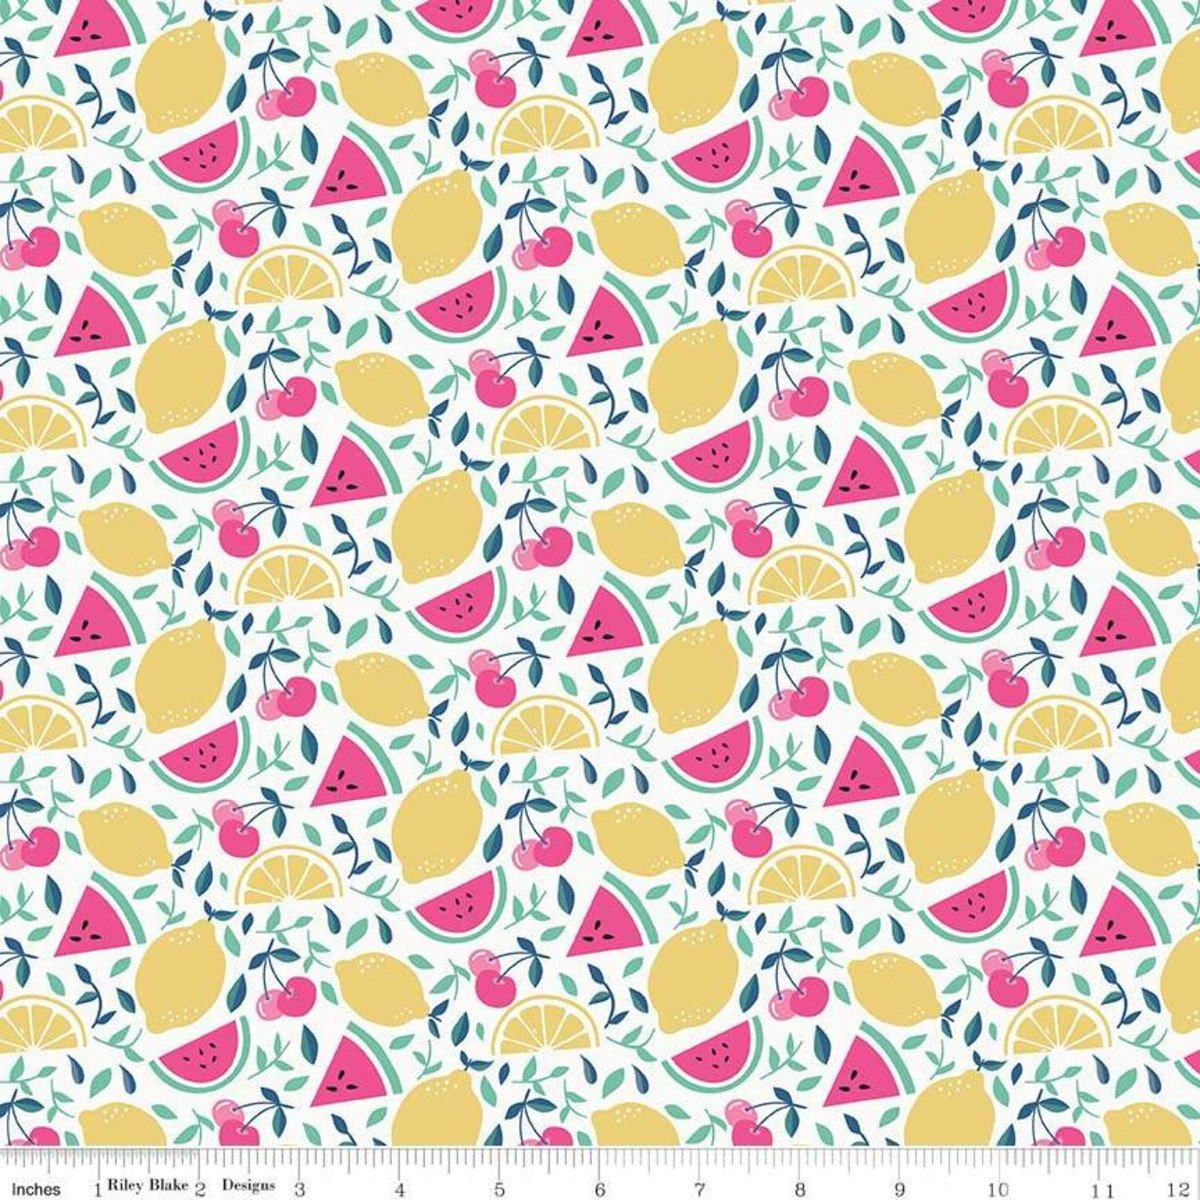 Fruit Cream from I'd Rather Be Glamping by Dani Mogstad for Riley Blake Designs